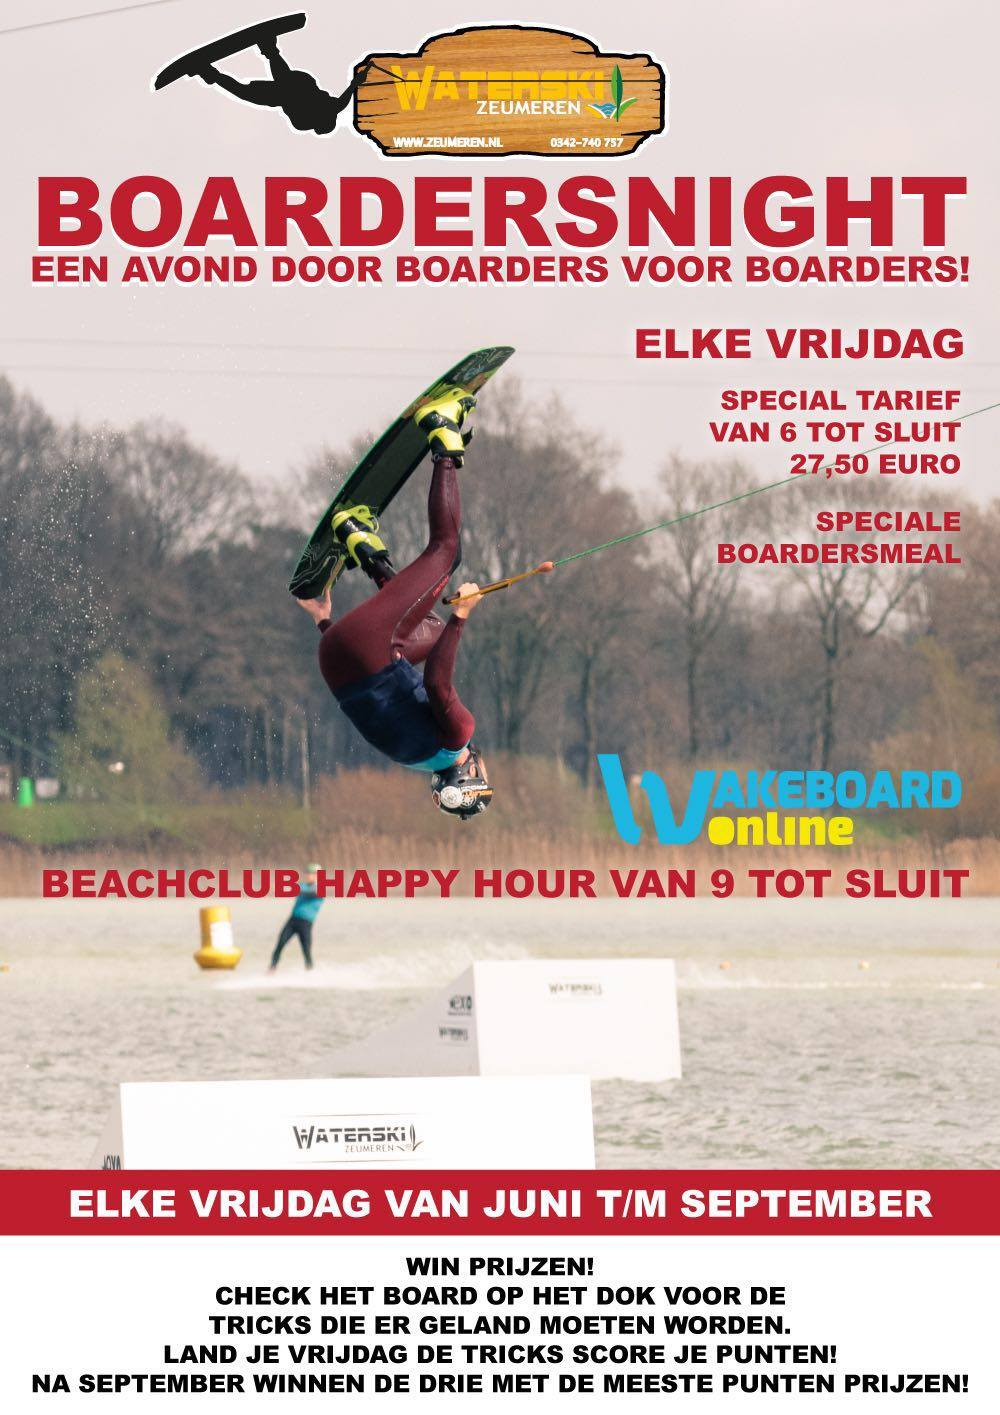 Boardersnight Zeumeren, powered by WakeboardOnline